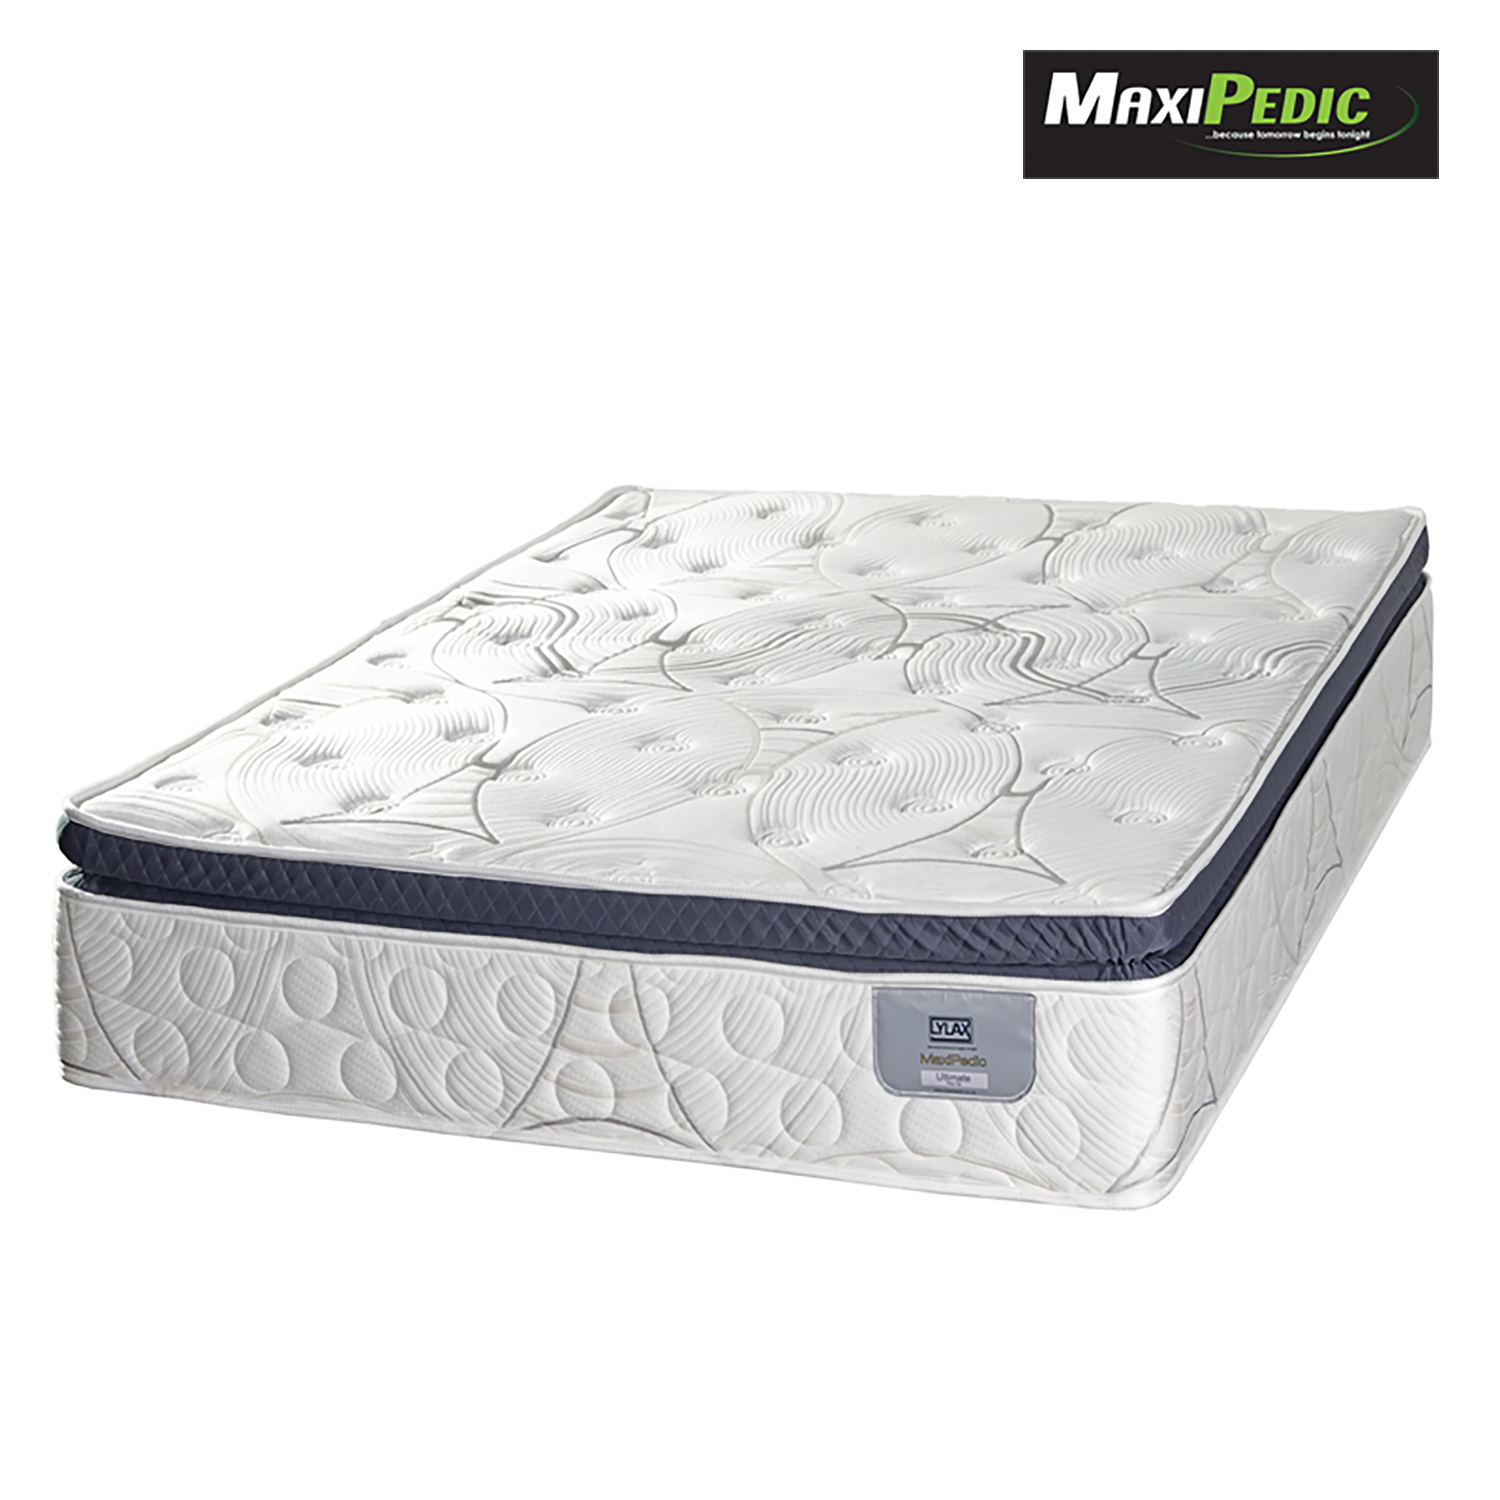 MAXIPEDIC ULTIMATE PILLOW TOP MATTRESS